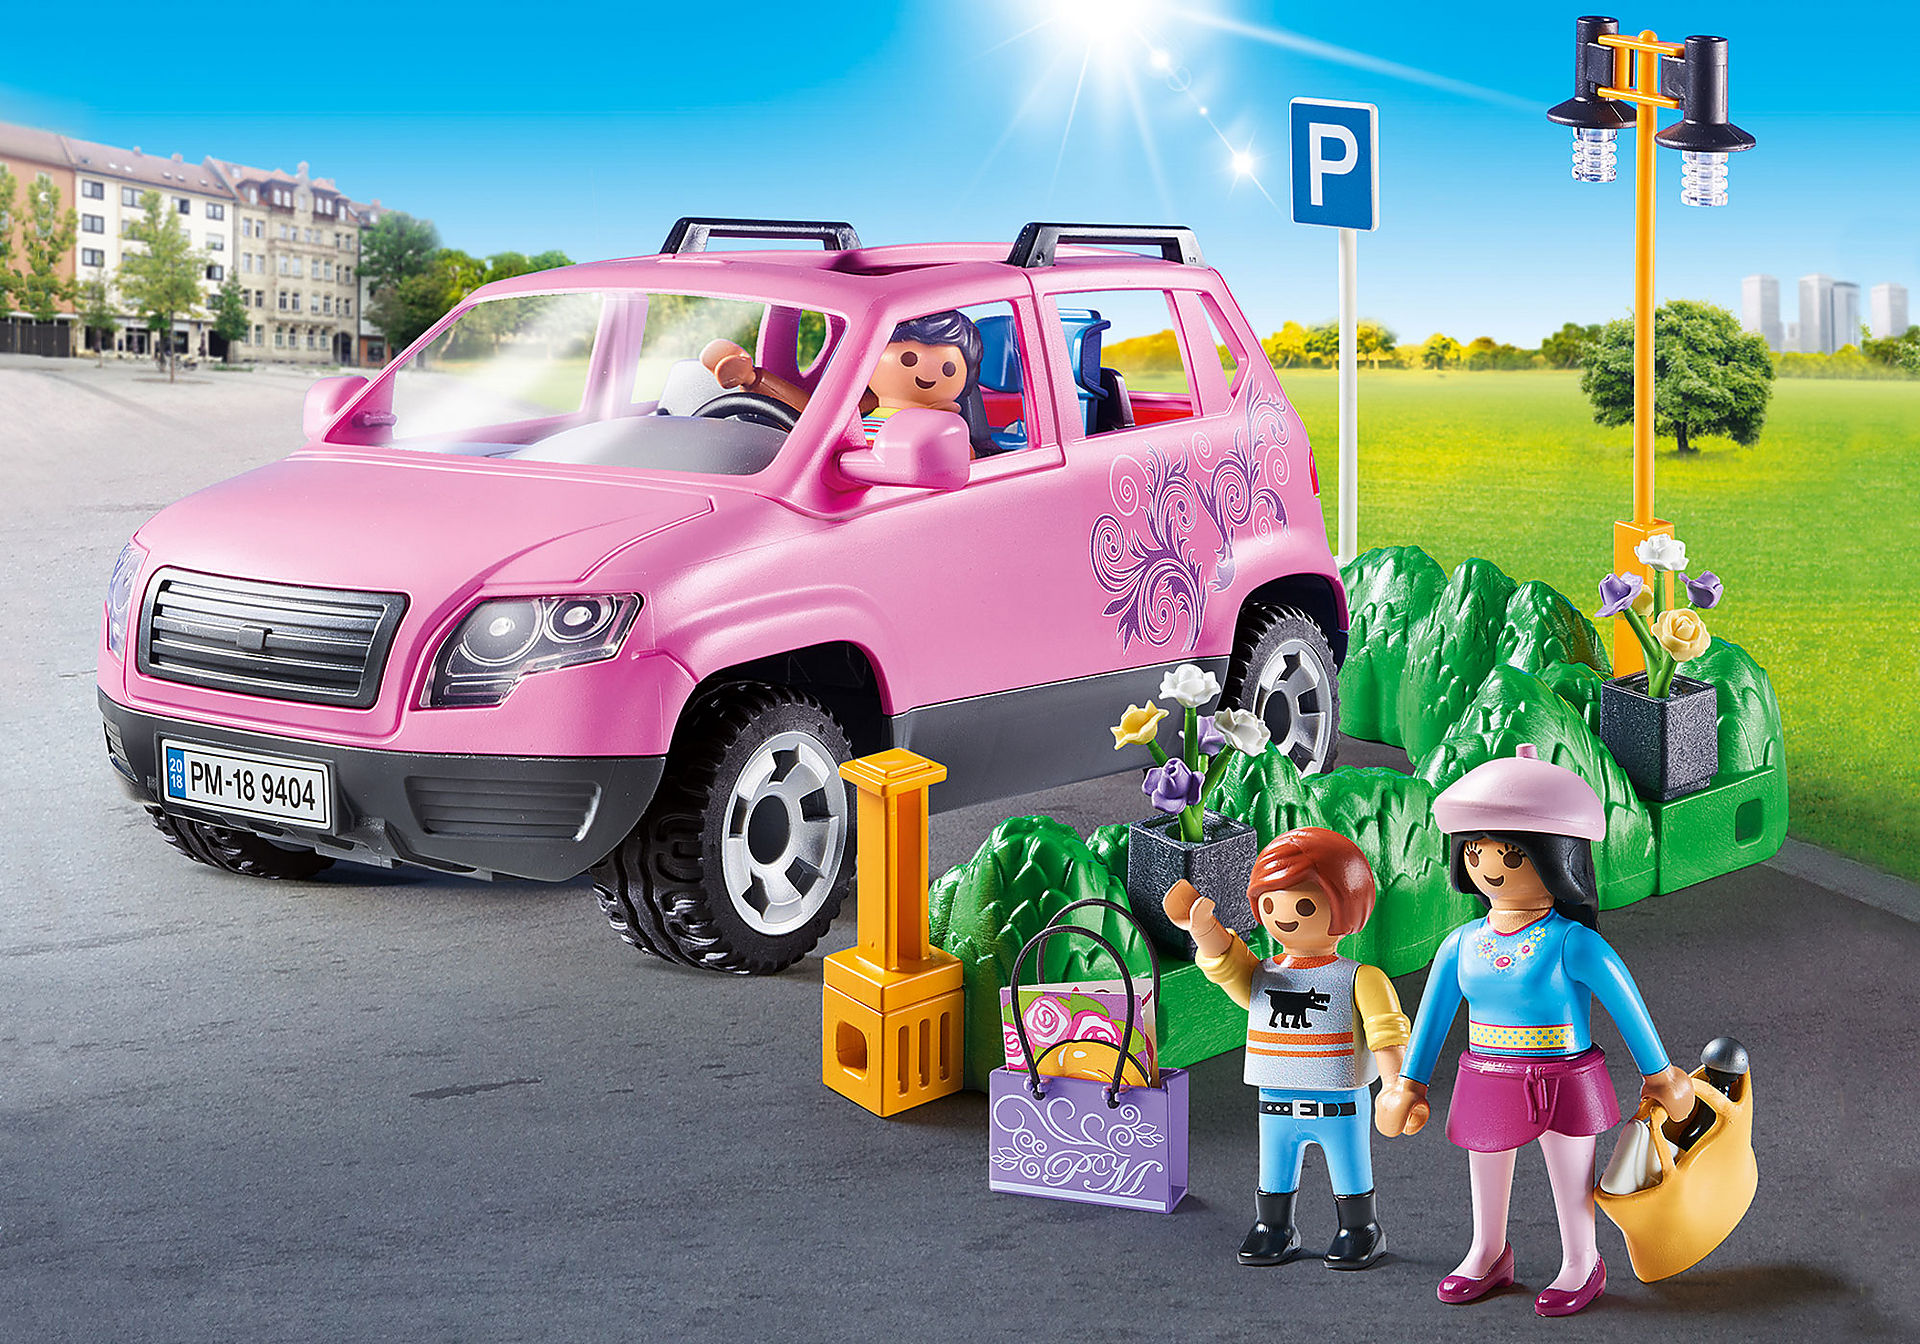 http://media.playmobil.com/i/playmobil/9404_product_detail/Coche Familiar con Parking